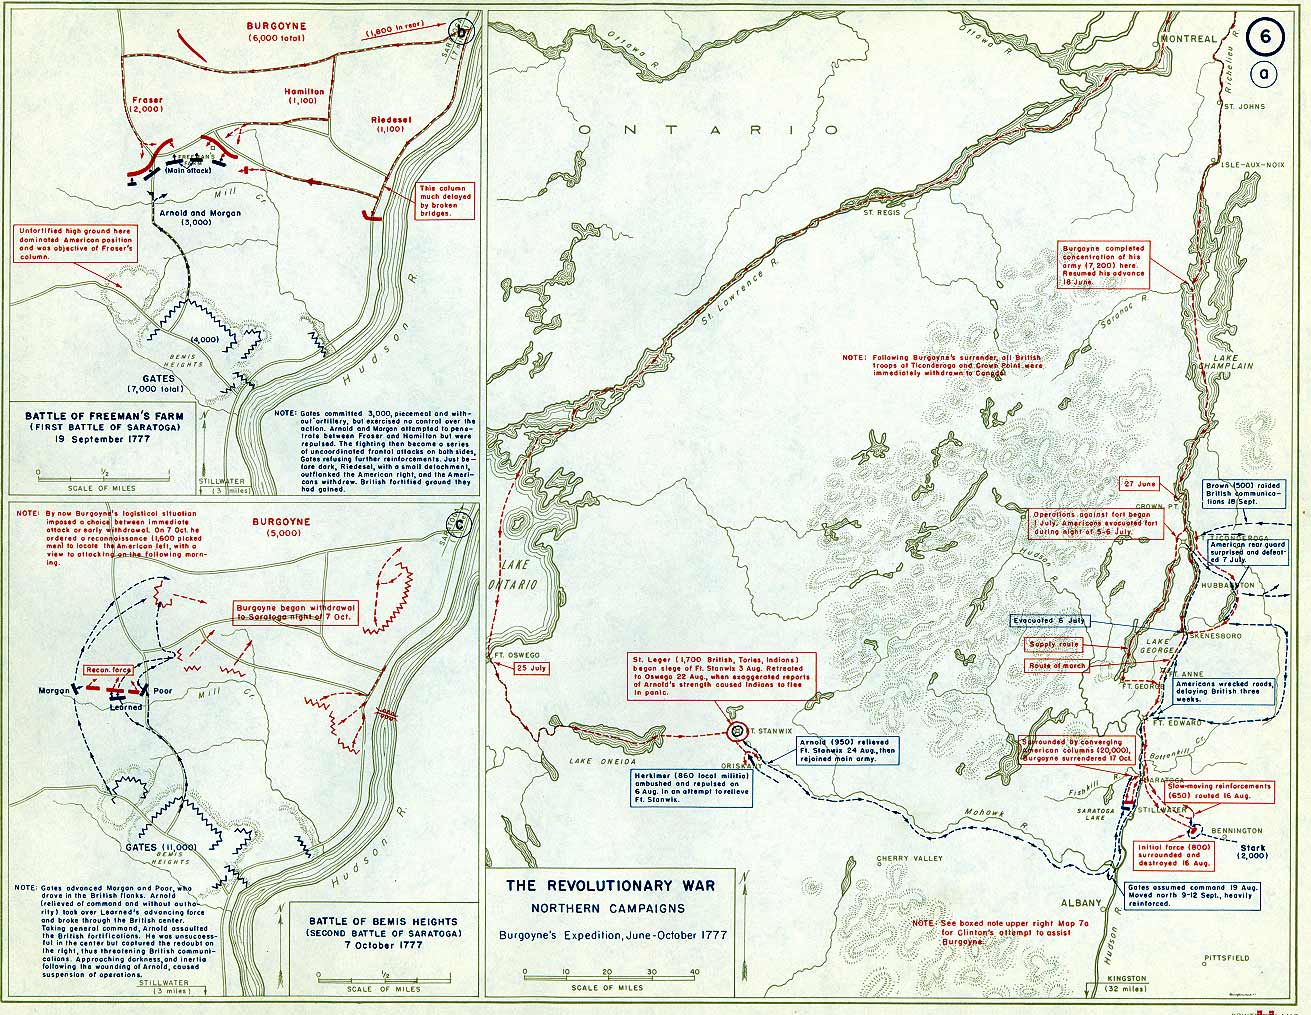 Battles of Saratoga, 1776 - Annotated Maps from USMA